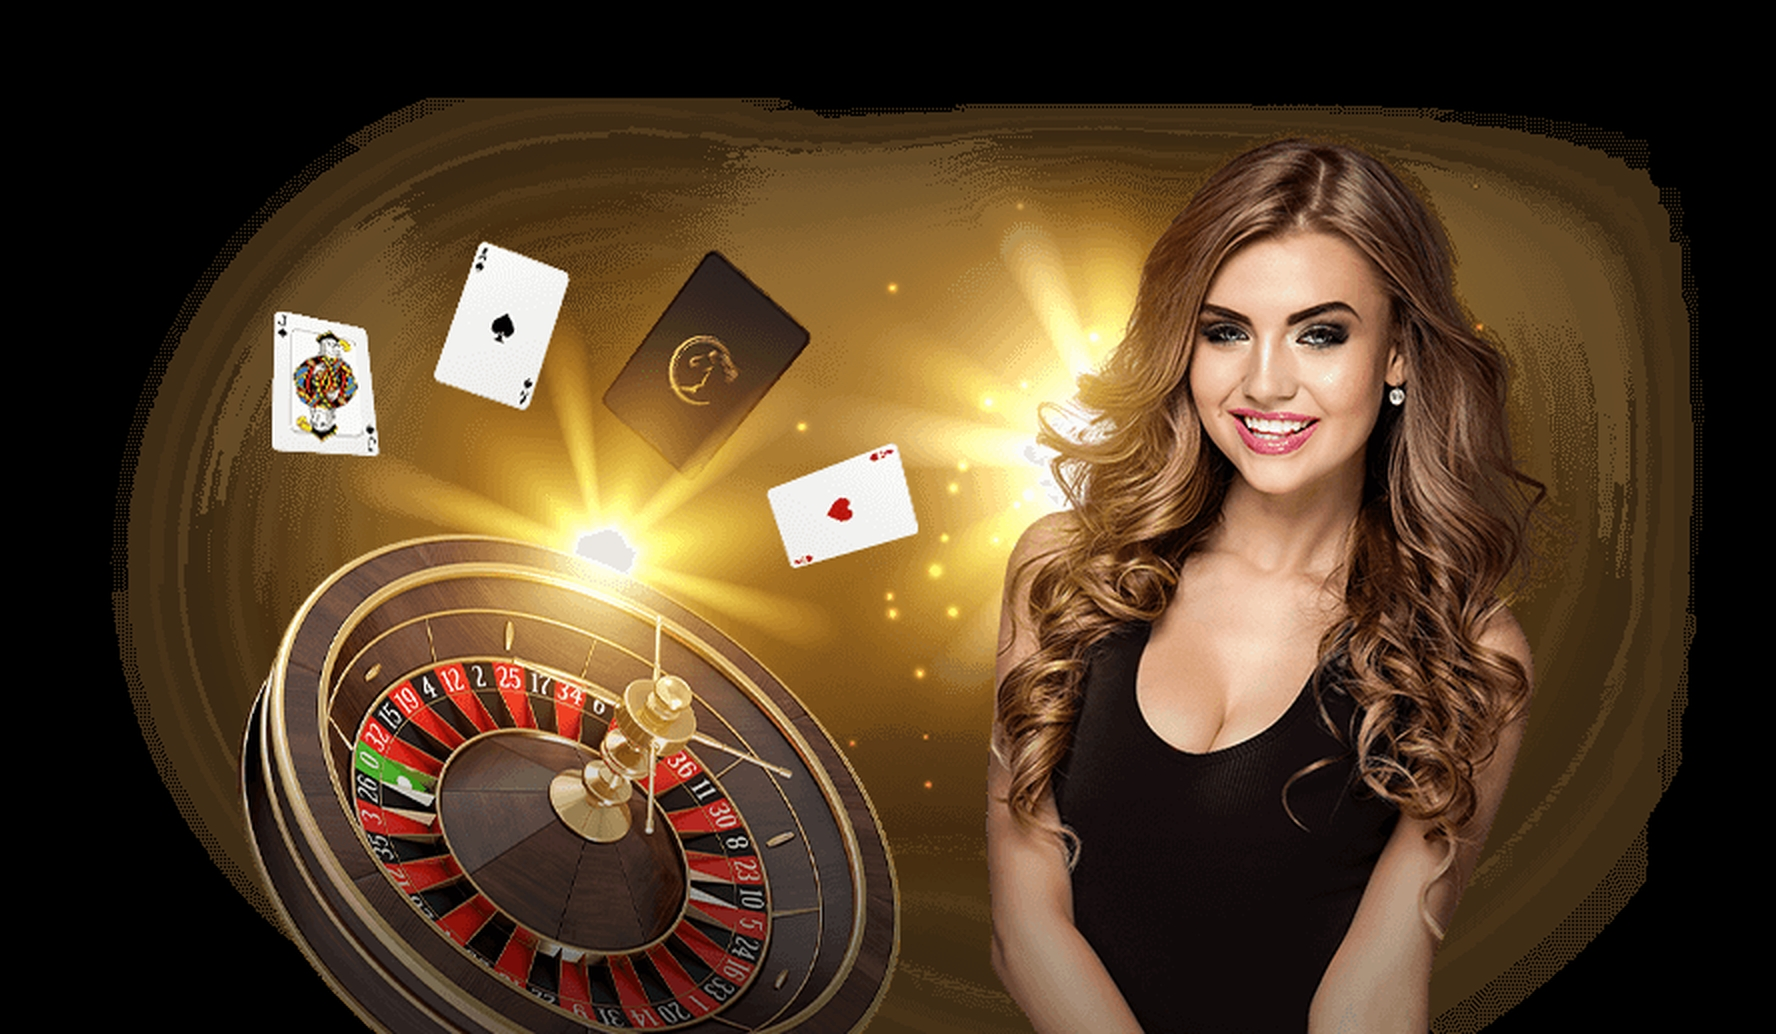 The VIP Blackjack 1 Live Casino Online Slot Demo Game by Extreme Live Gaming